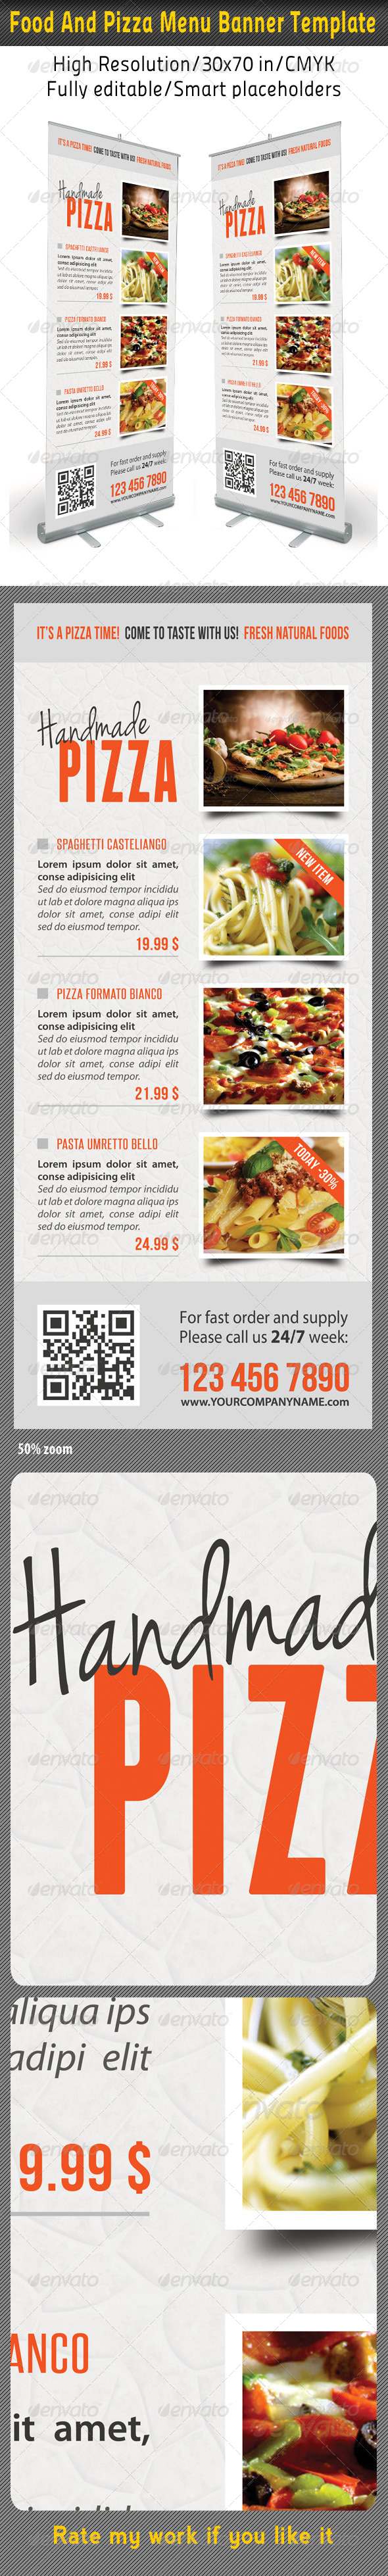 GraphicRiver Food And Pizza Menu Banner Template 09 7489152